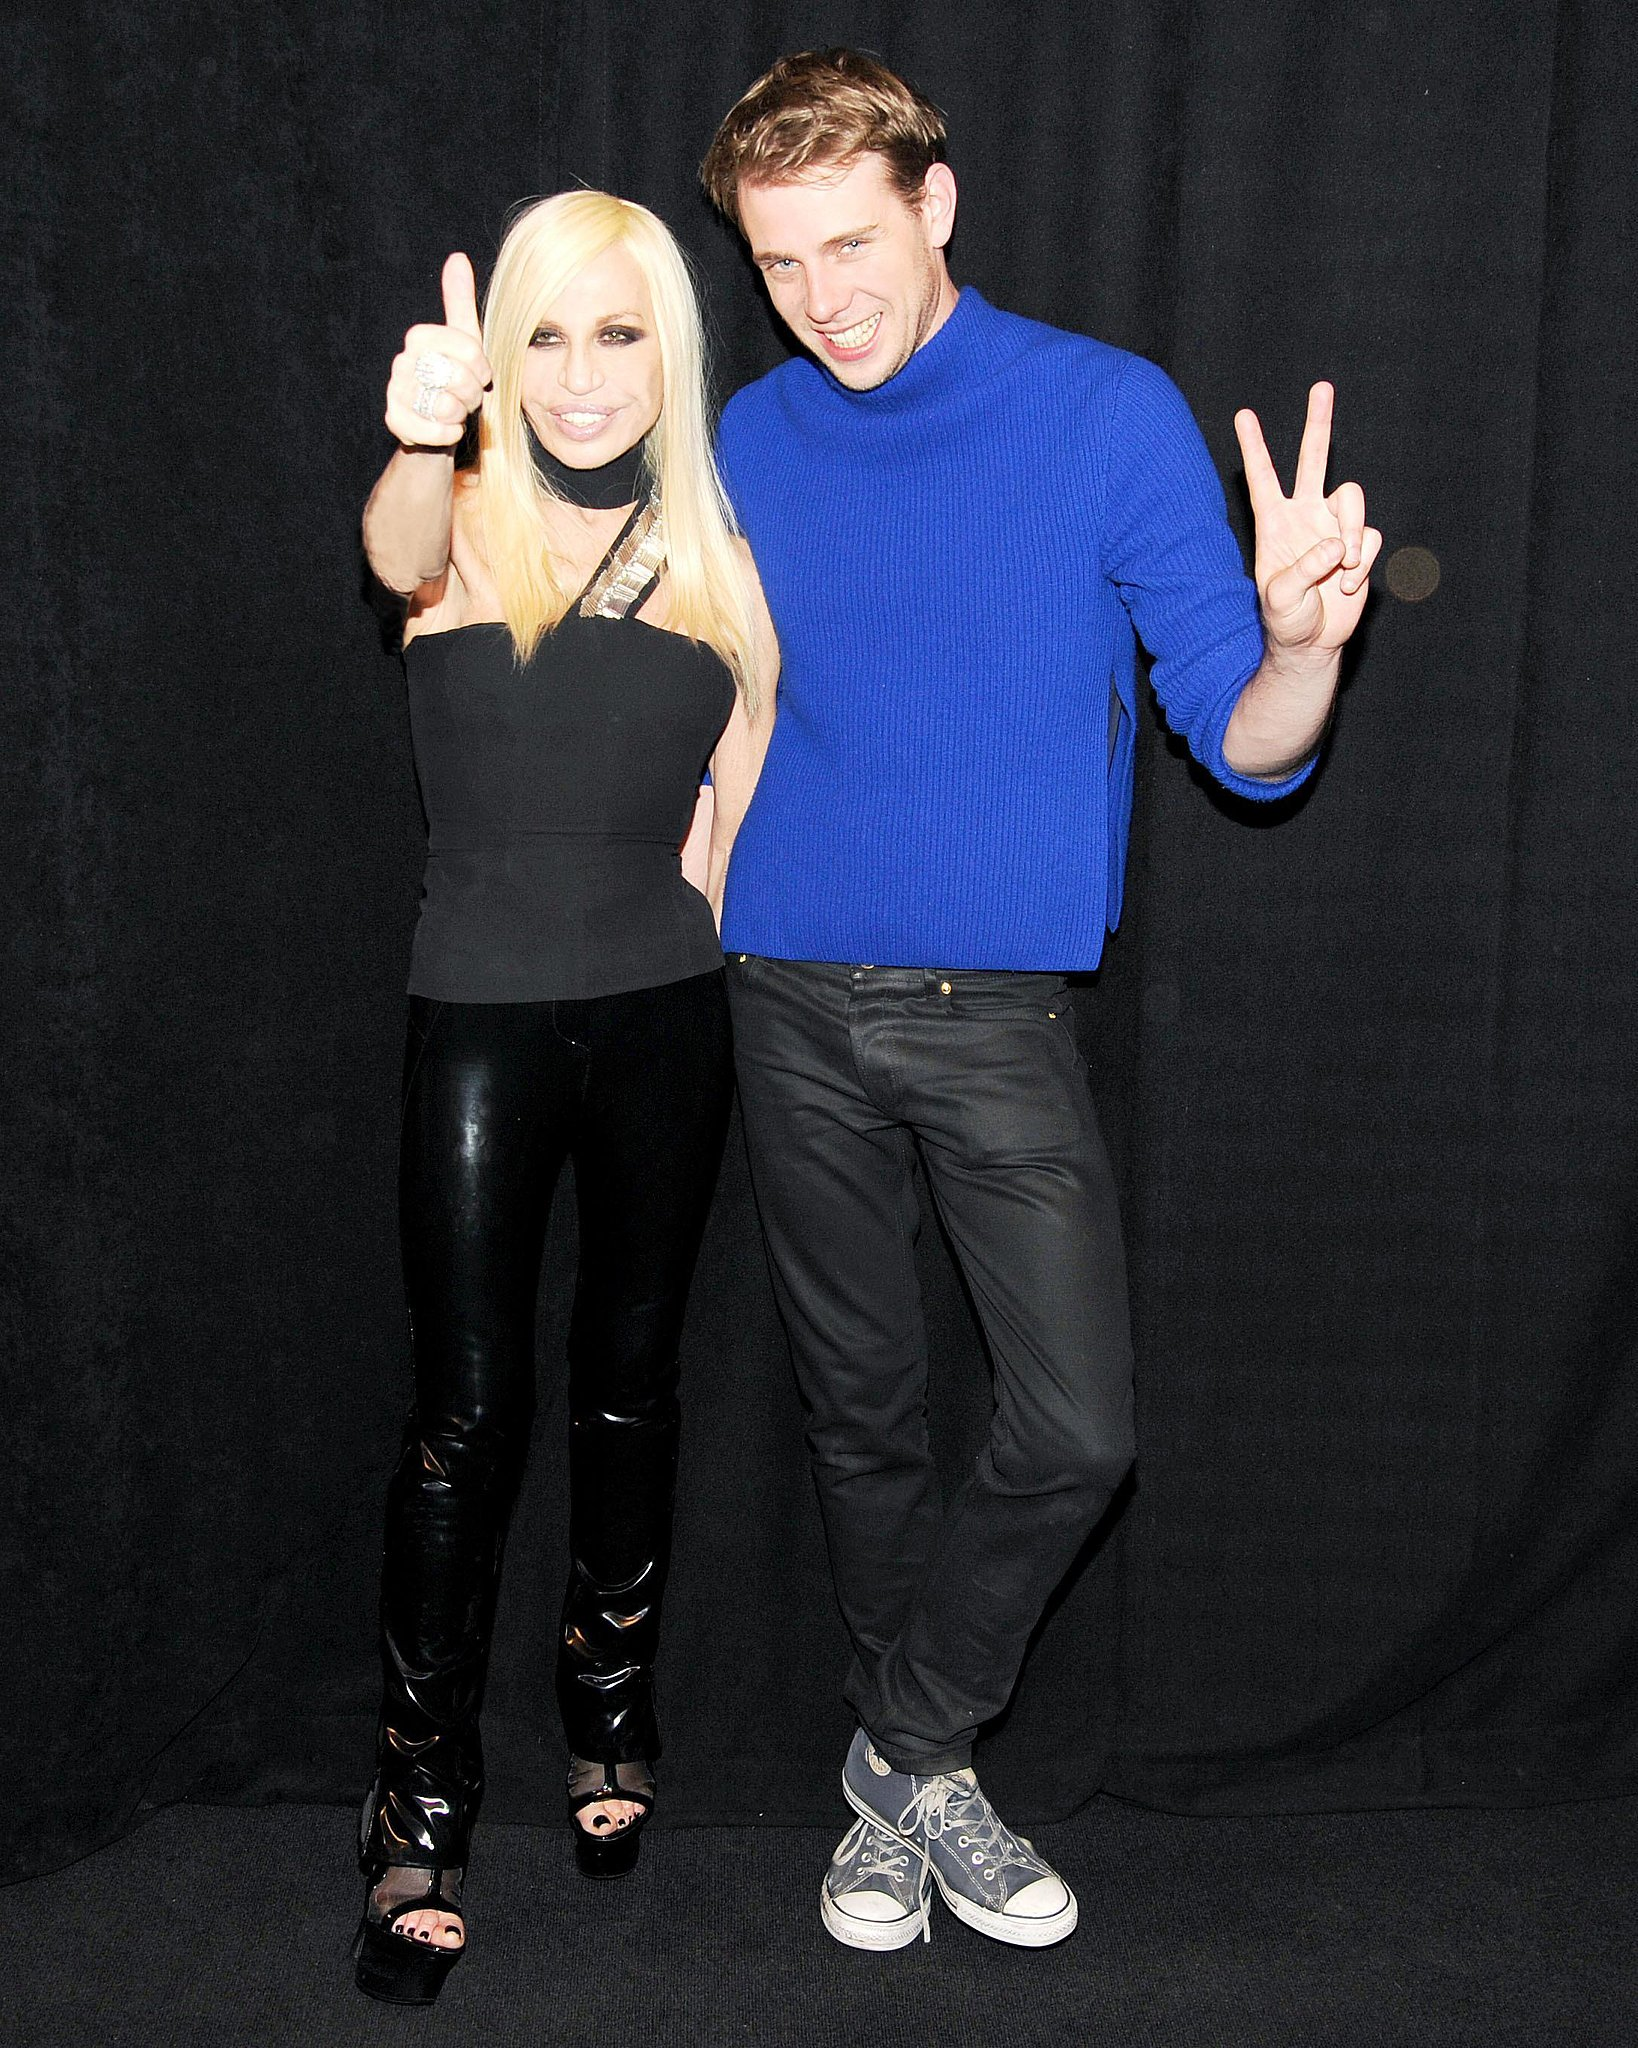 Donatella Versace and Jonathan Anderson at the launch party for their Versus collaboration. Source: Billy Farrell/BFAnyc.com